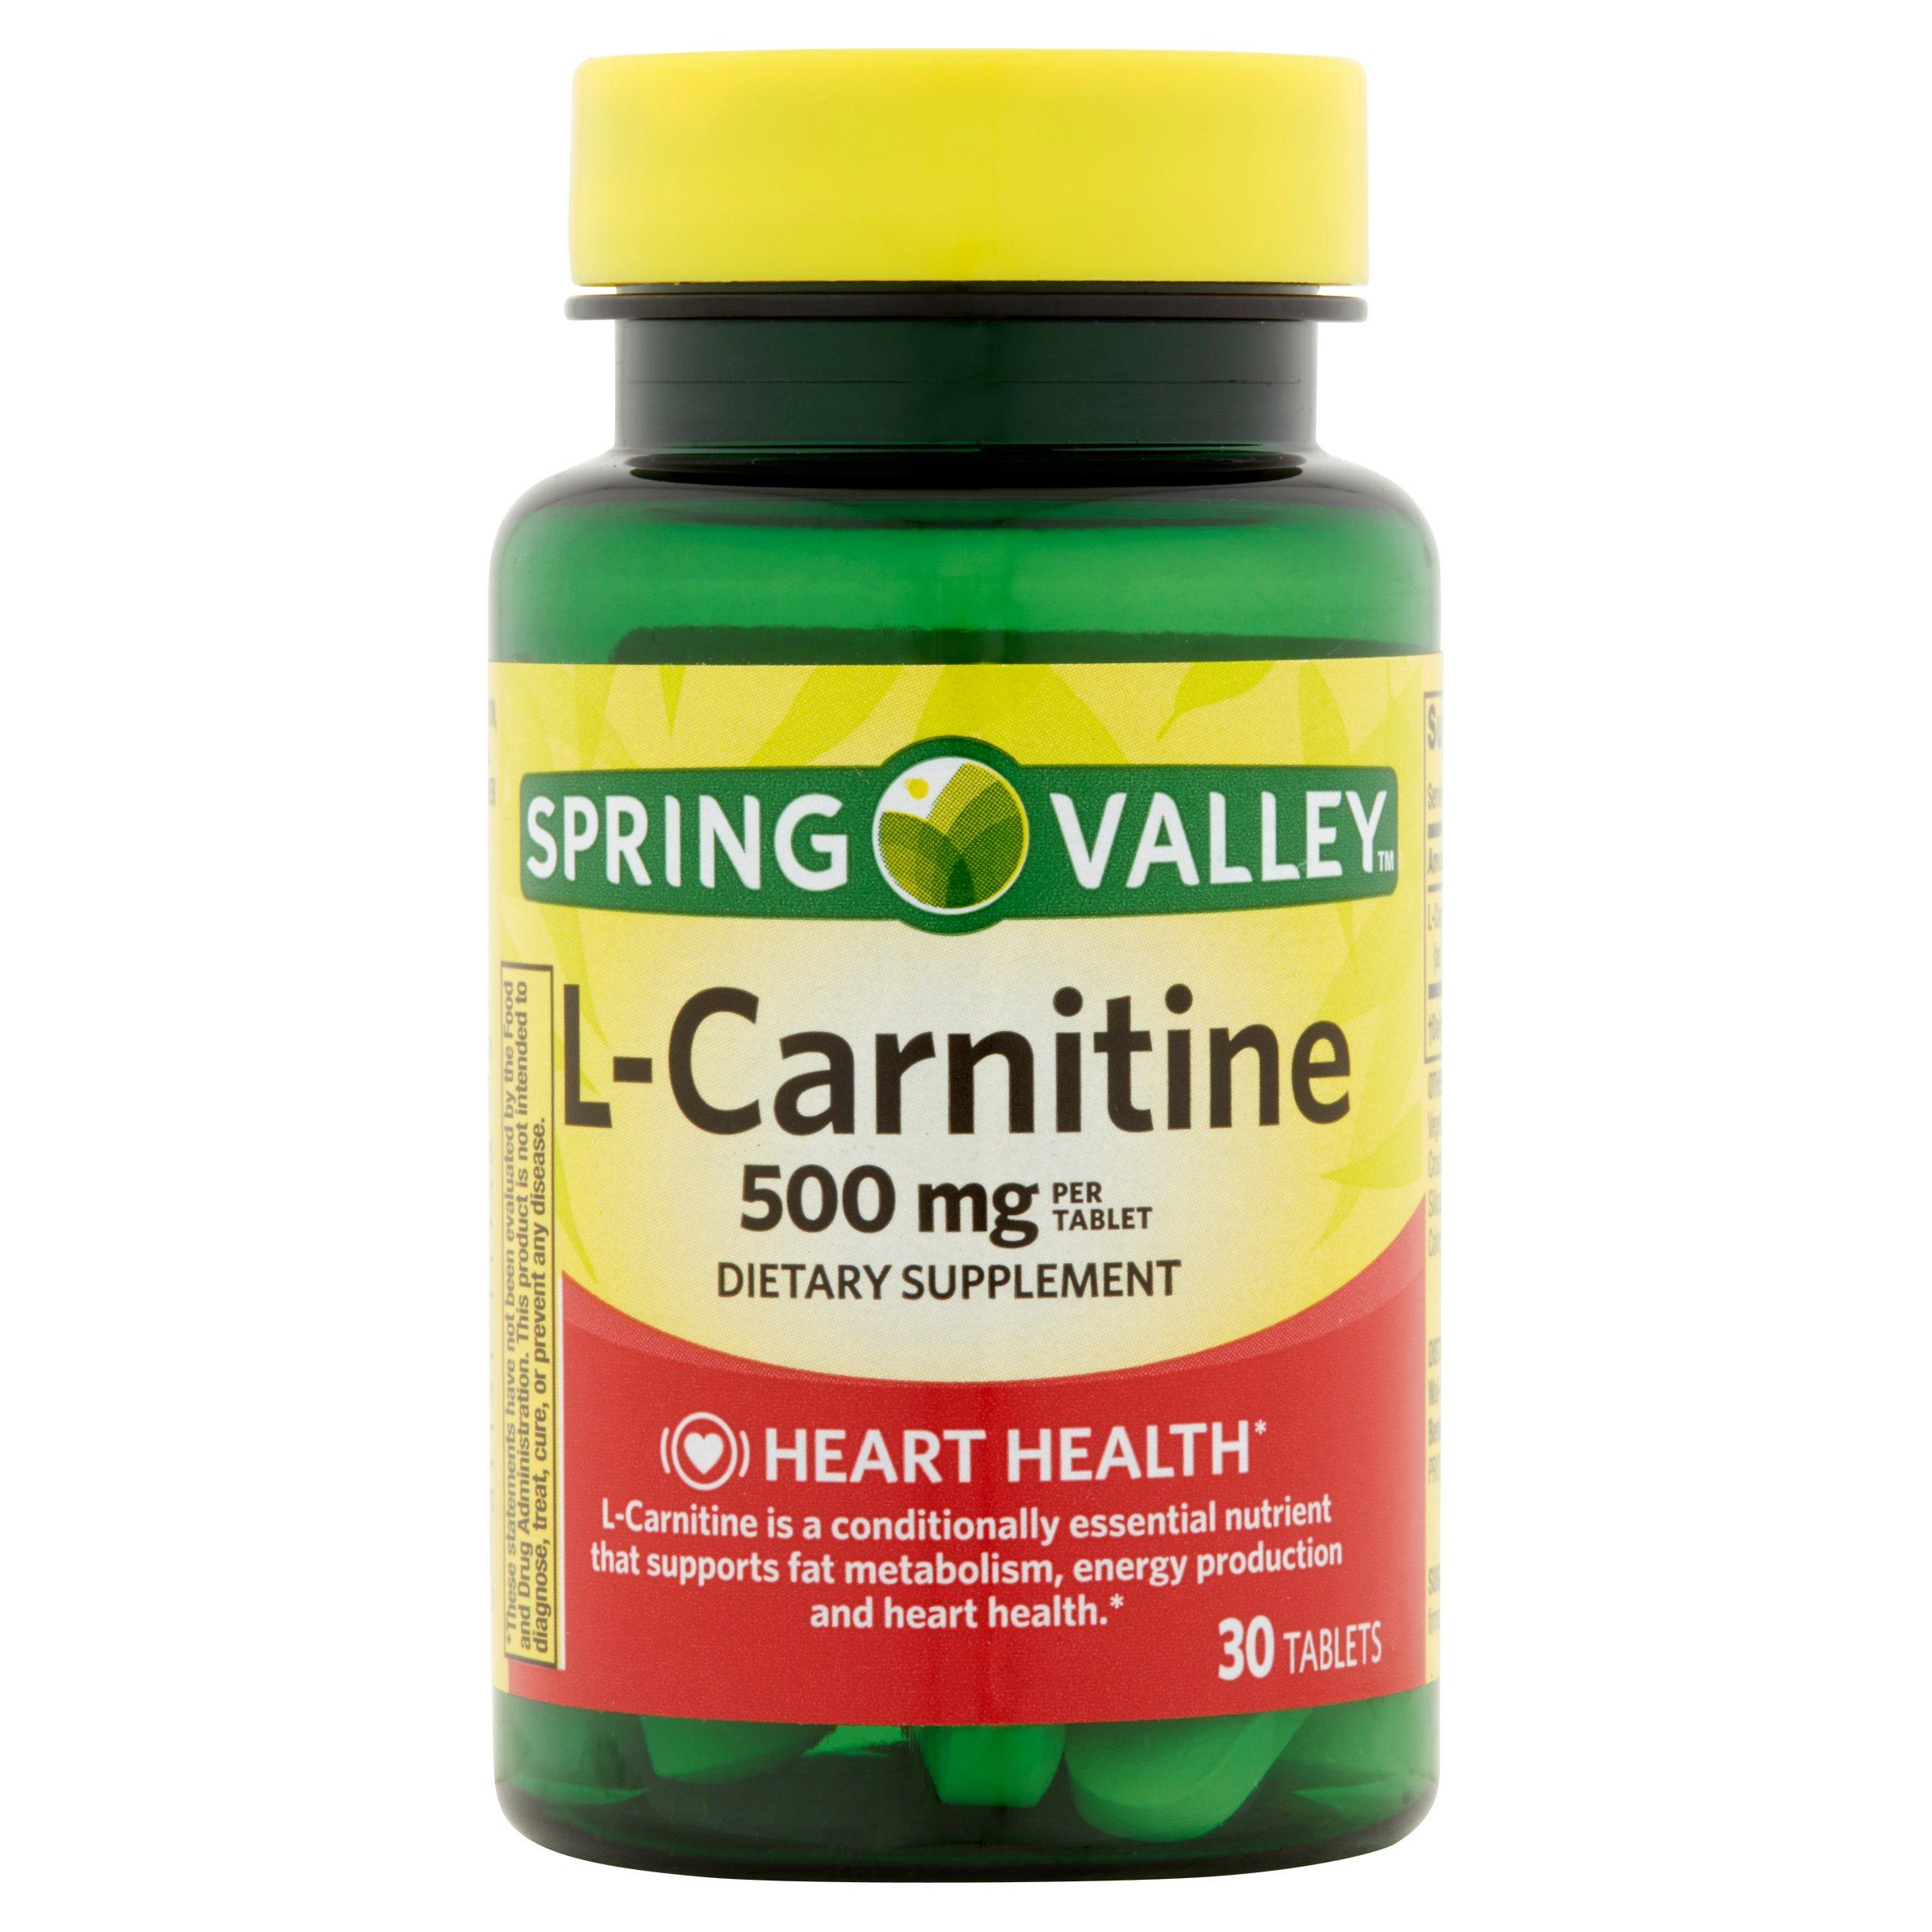 (2 Pack) Spring Valley L-Carnitine Capsules, 500 mg, 30 Ct